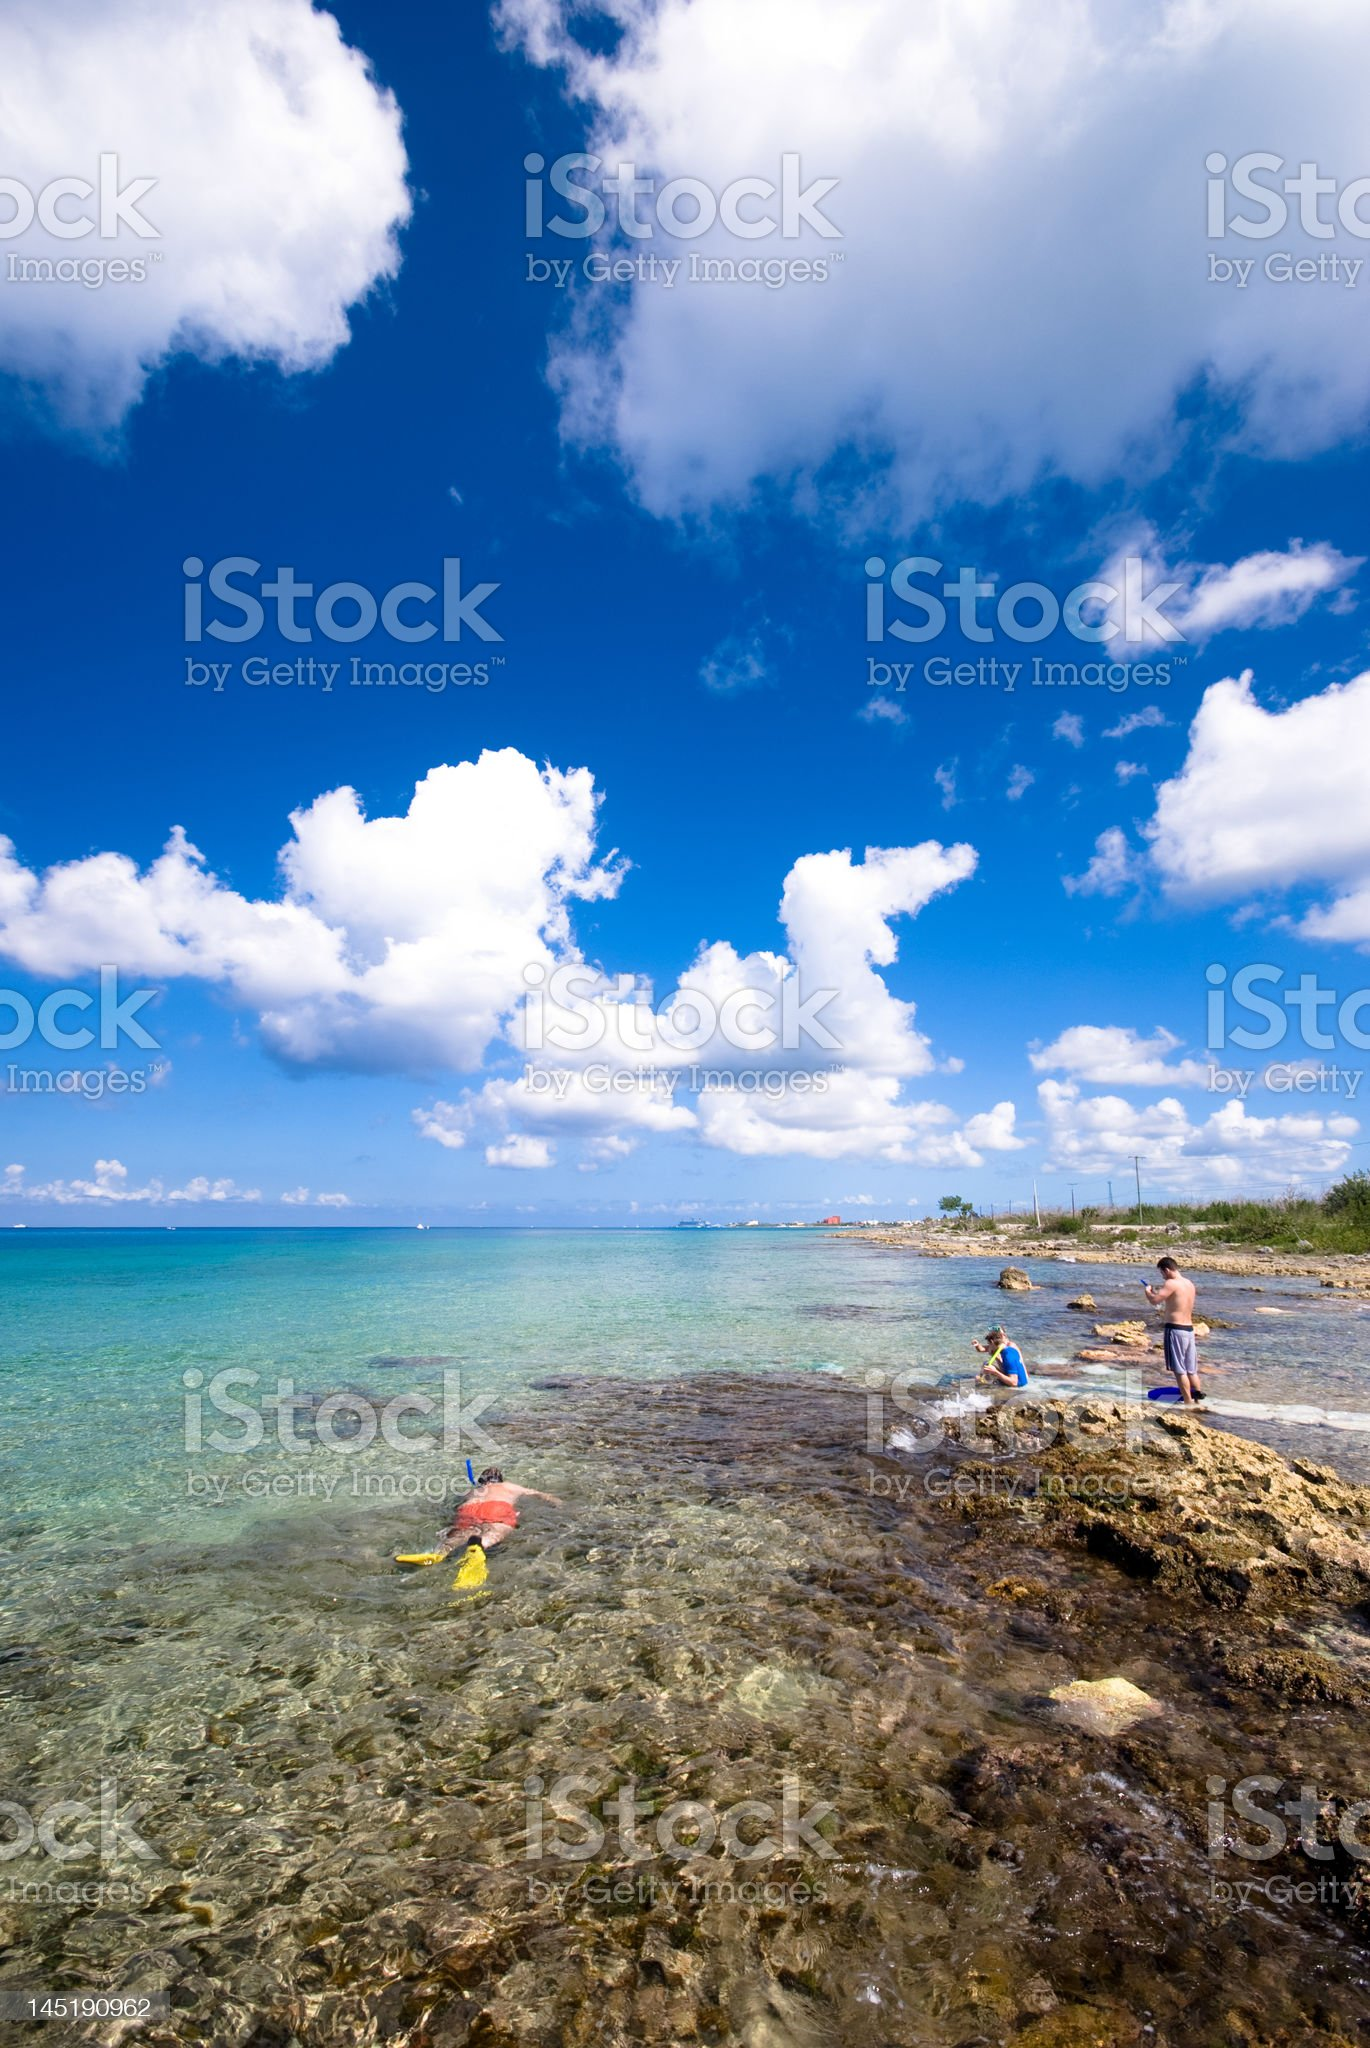 People snorkeling at the beach in Cozumel, Mexico royalty-free stock photo